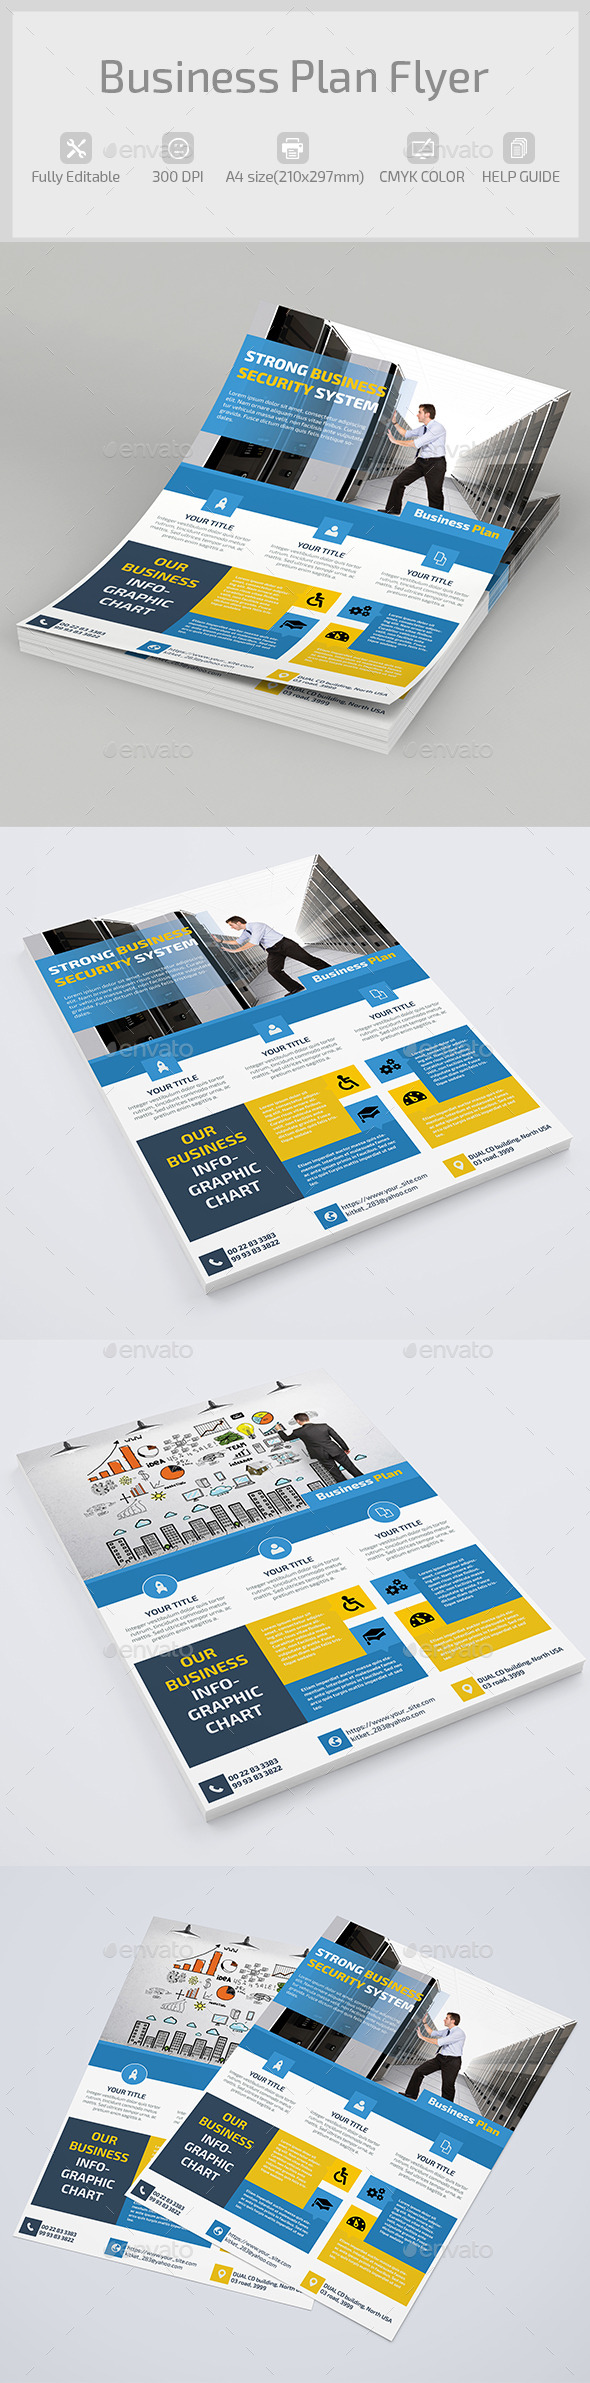 GraphicRiver Business Plan Flyer 9485845